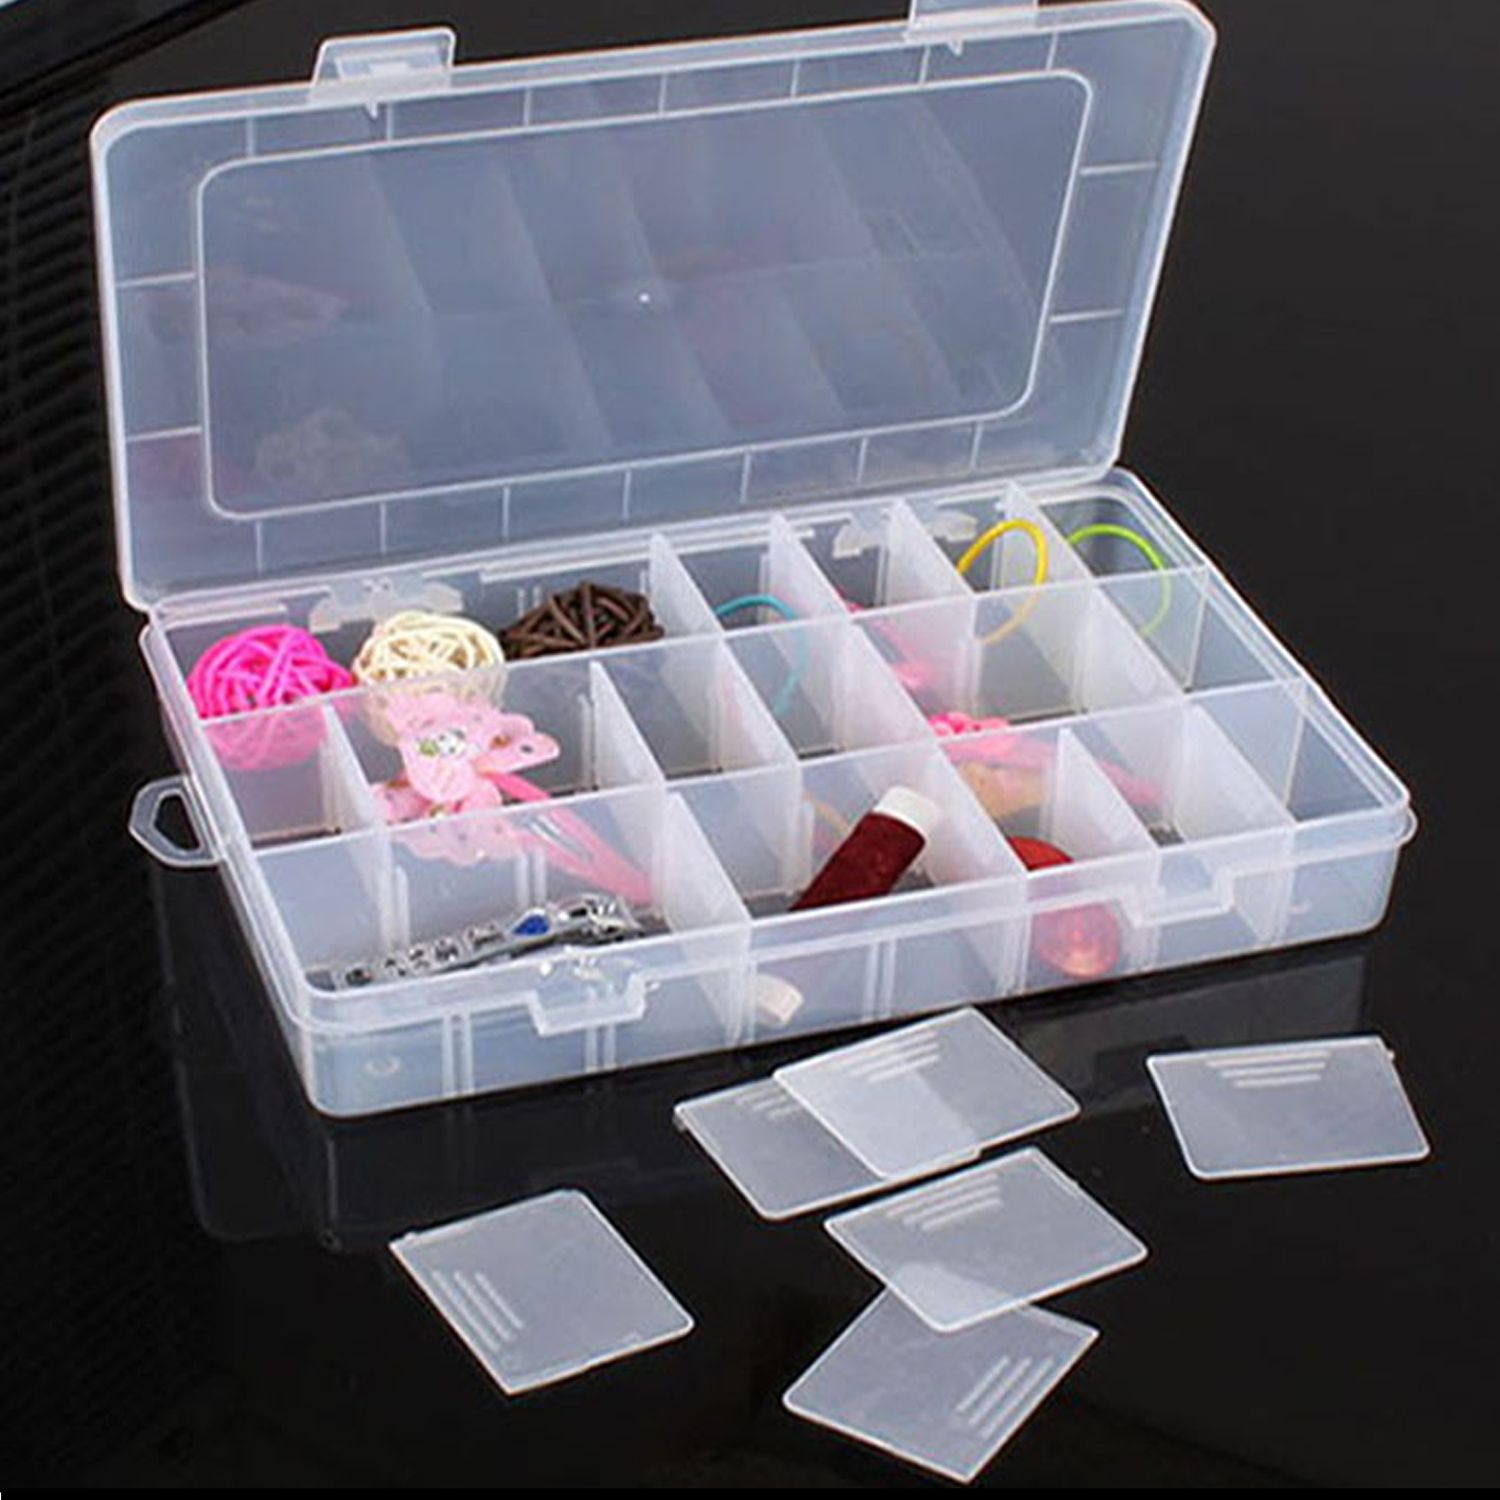 24 Grids Clear Plastic Adjustable Jewelry Storage Container DIY Crafts Organizer